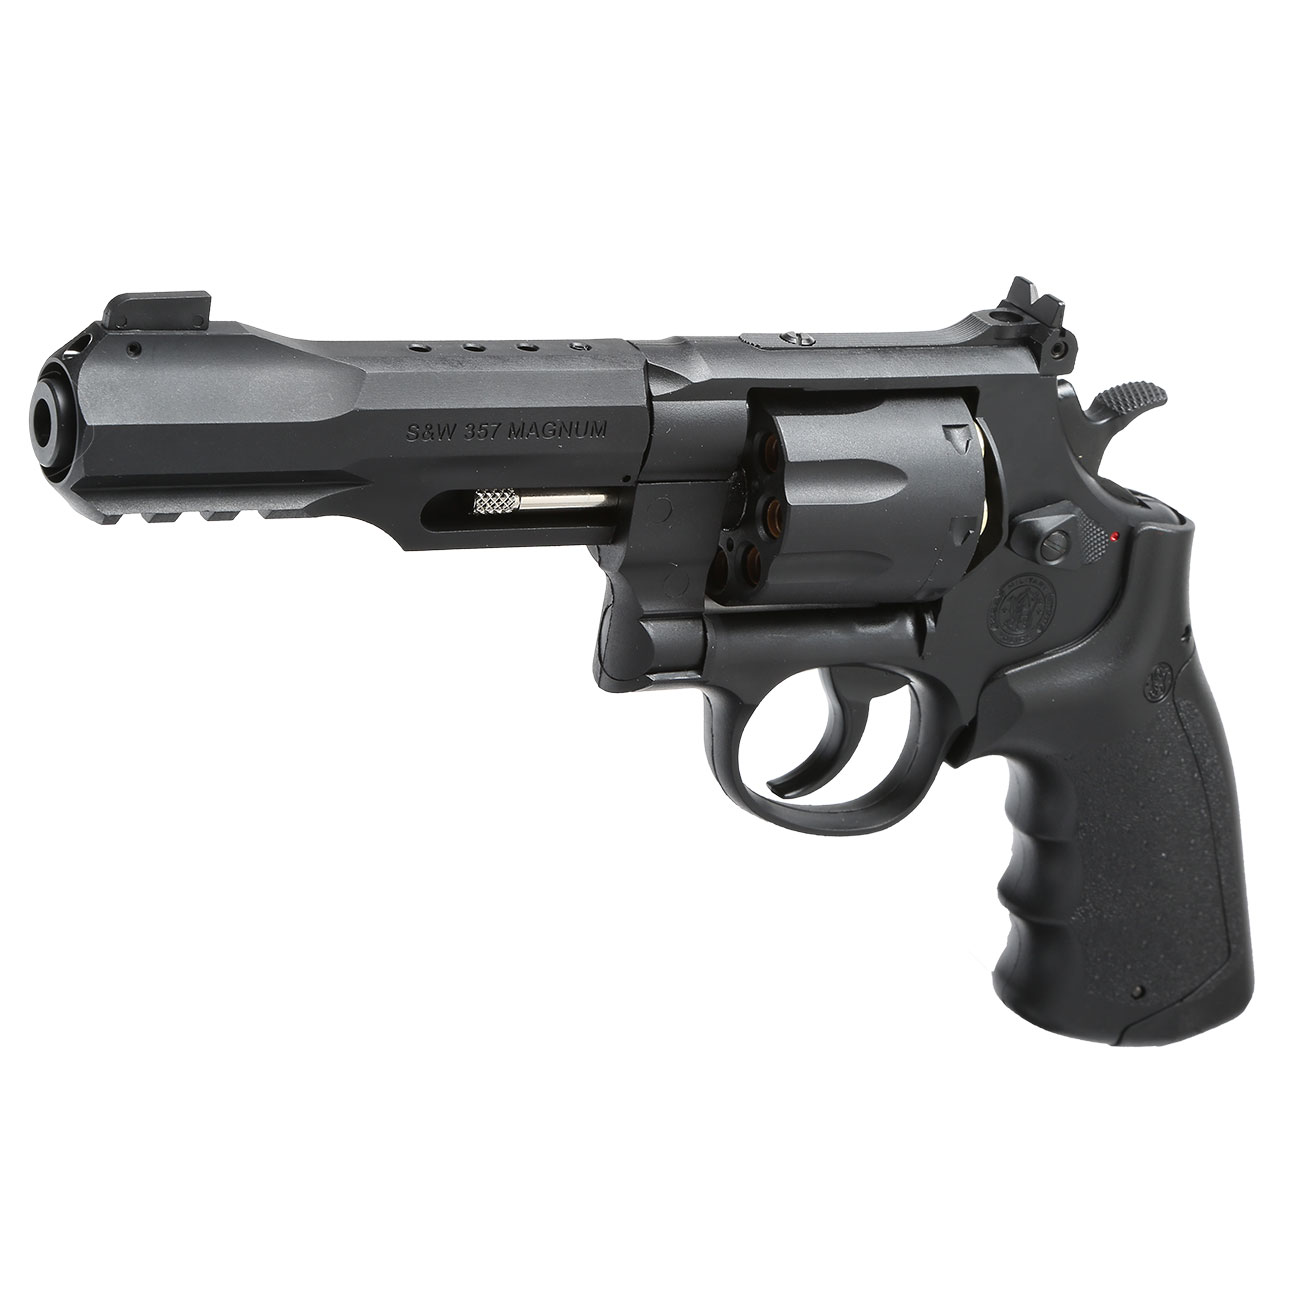 Smith & Wesson M&P R8 4 Zoll CO2 Revolver 6mm BB schwarz 0